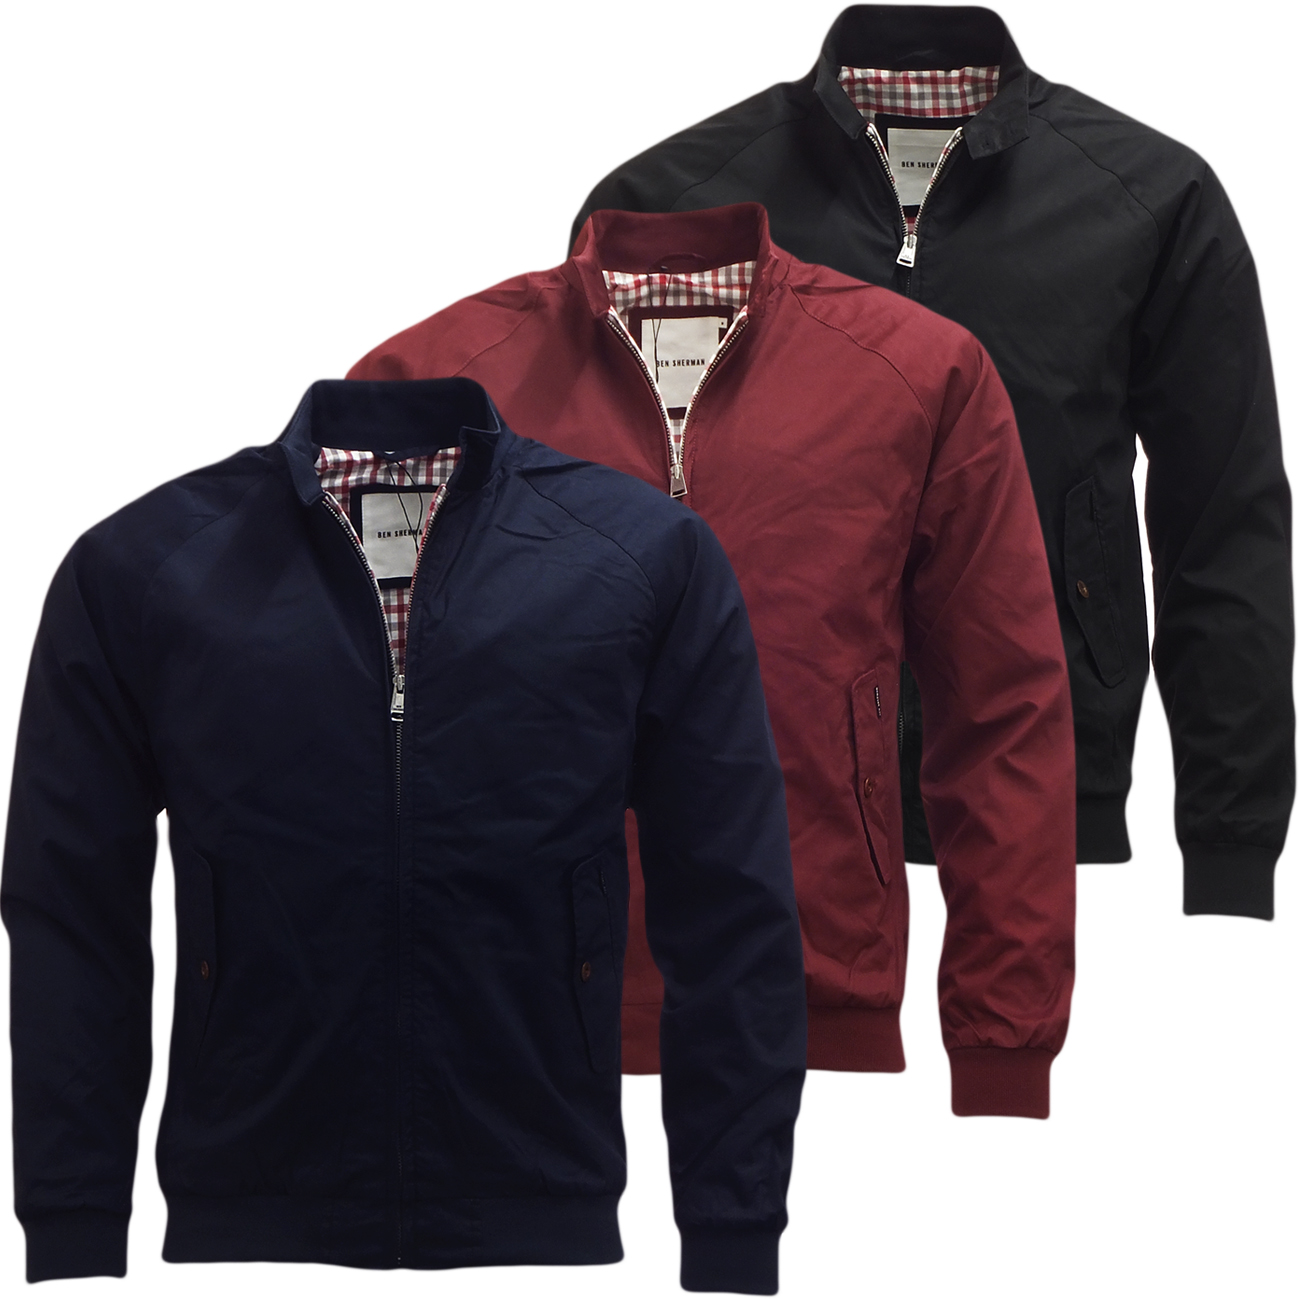 herren ben sherman harrington jacke smart casual jacke s m l xl xxl ebay. Black Bedroom Furniture Sets. Home Design Ideas